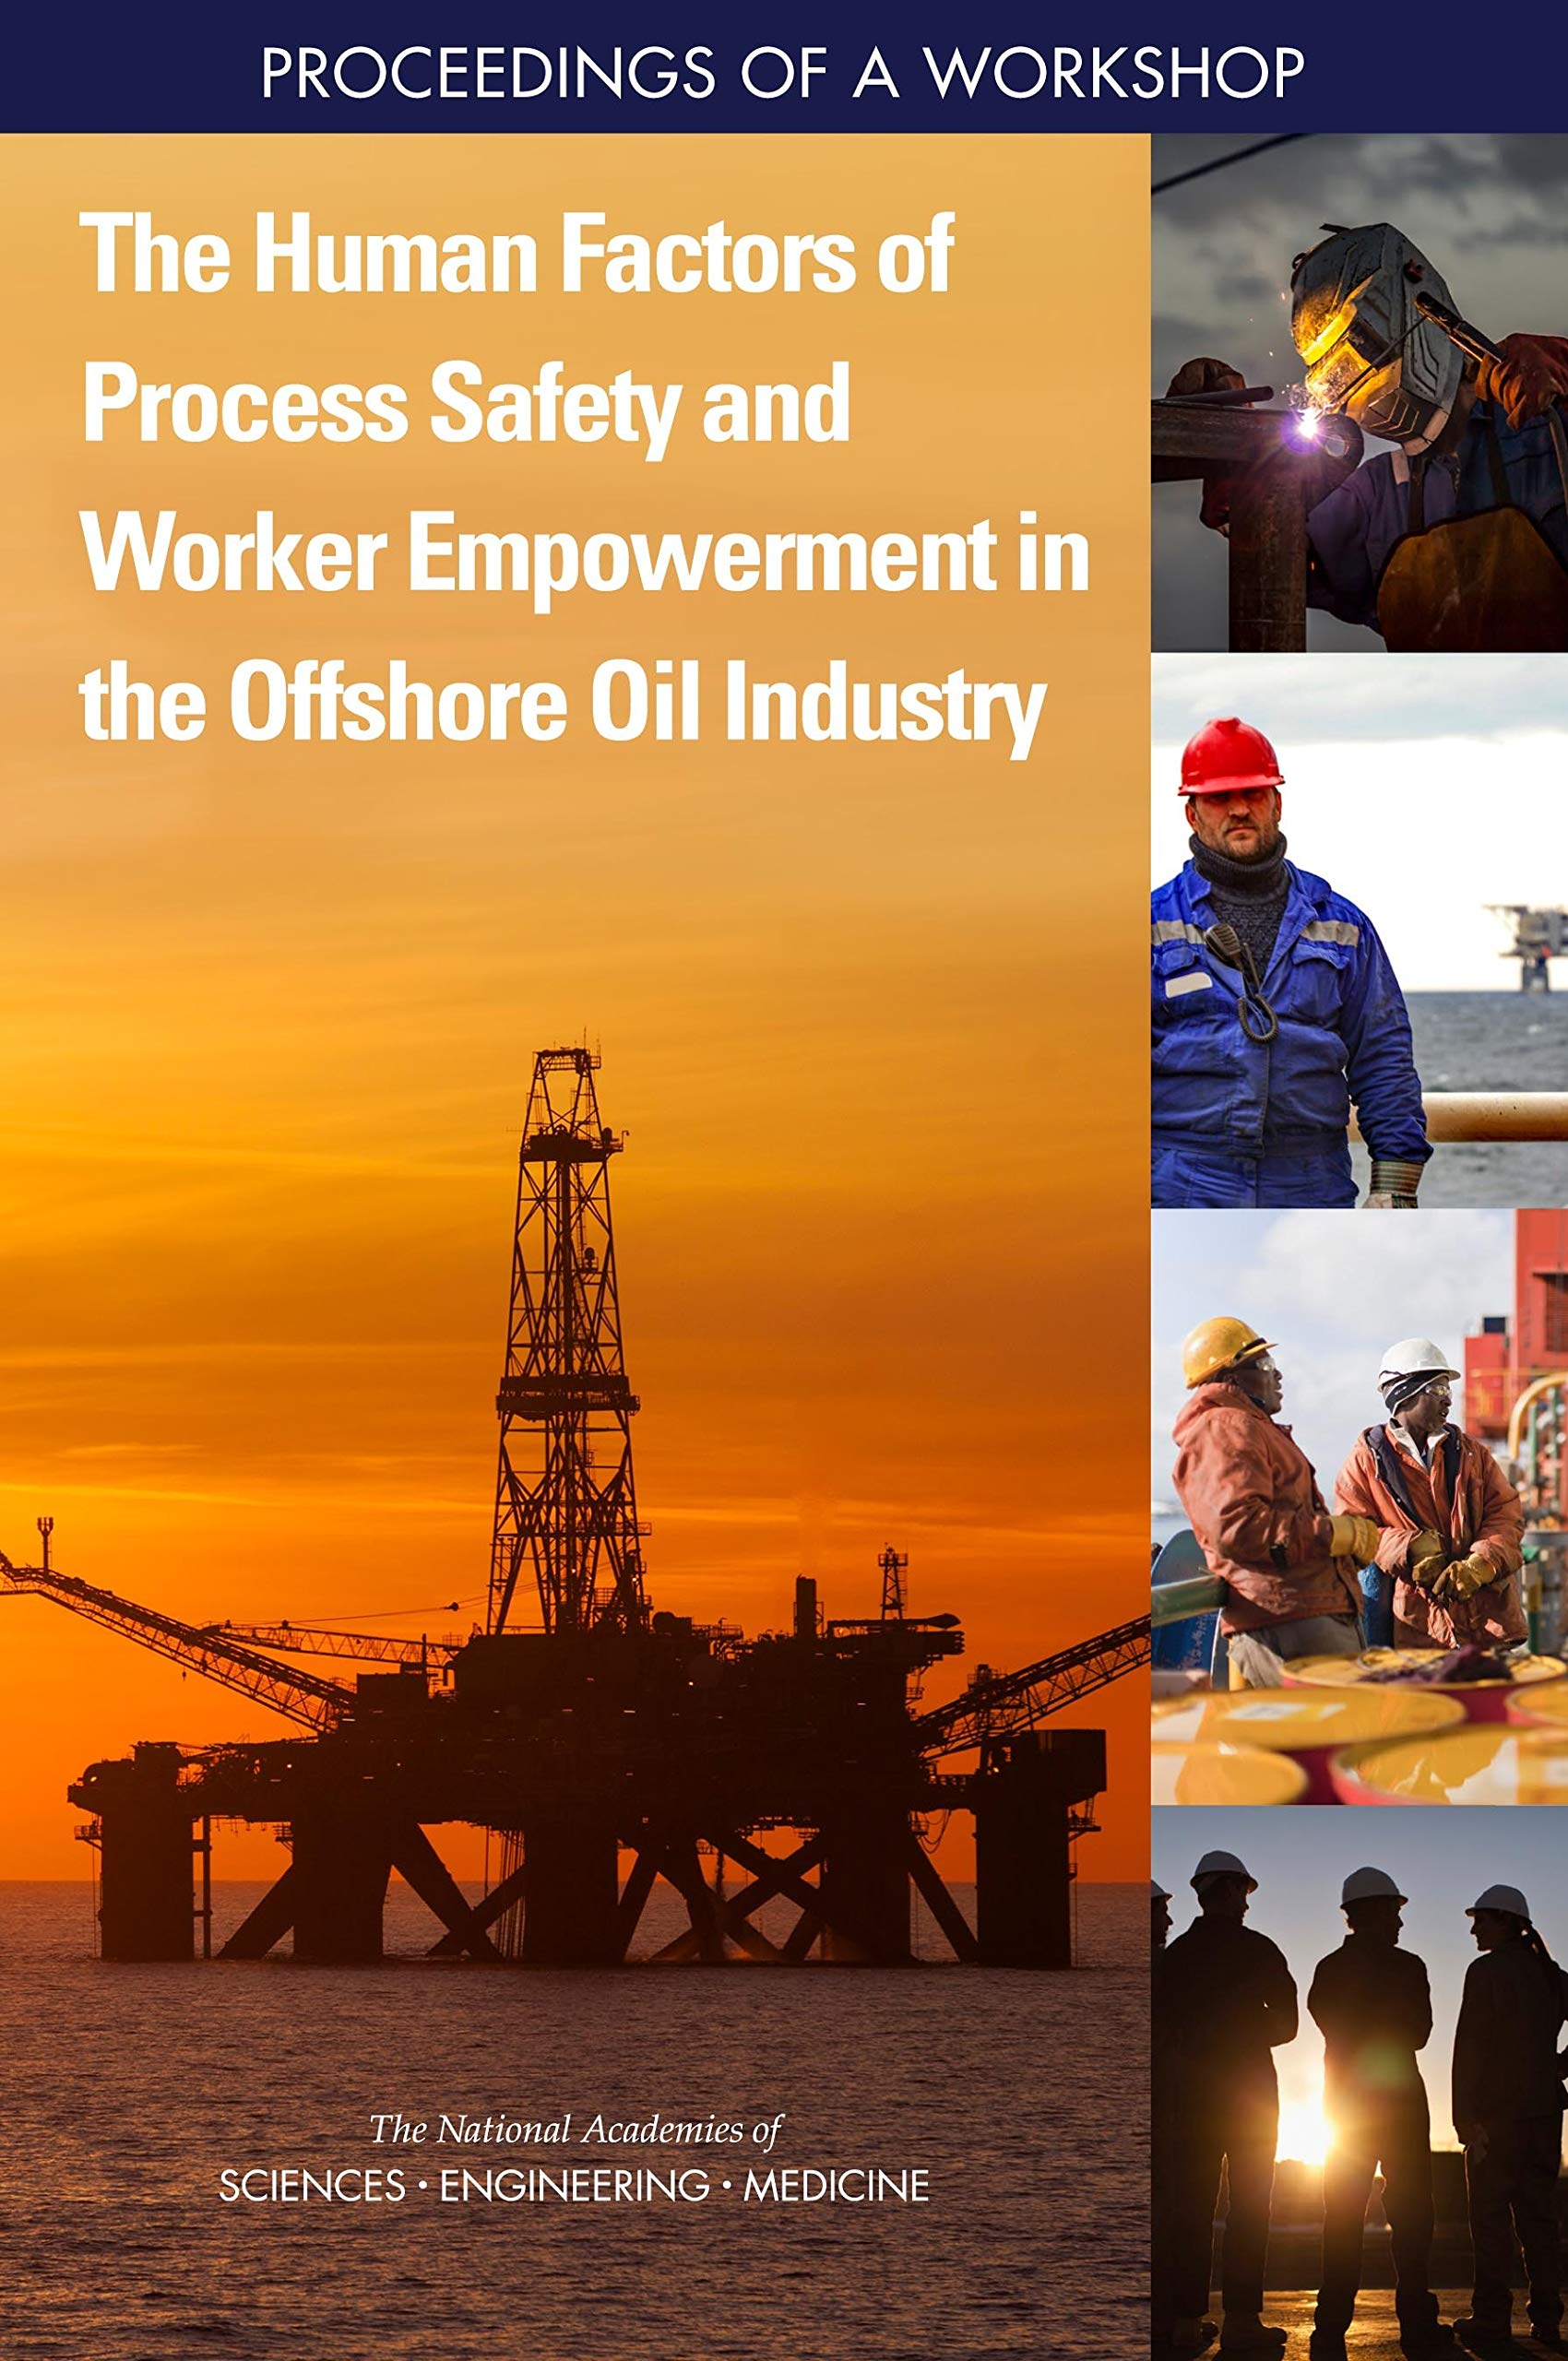 The Human Factors of Process Safety and Worker Empowerment in the Offshore Oil Industry: Proceedings of a Workshop